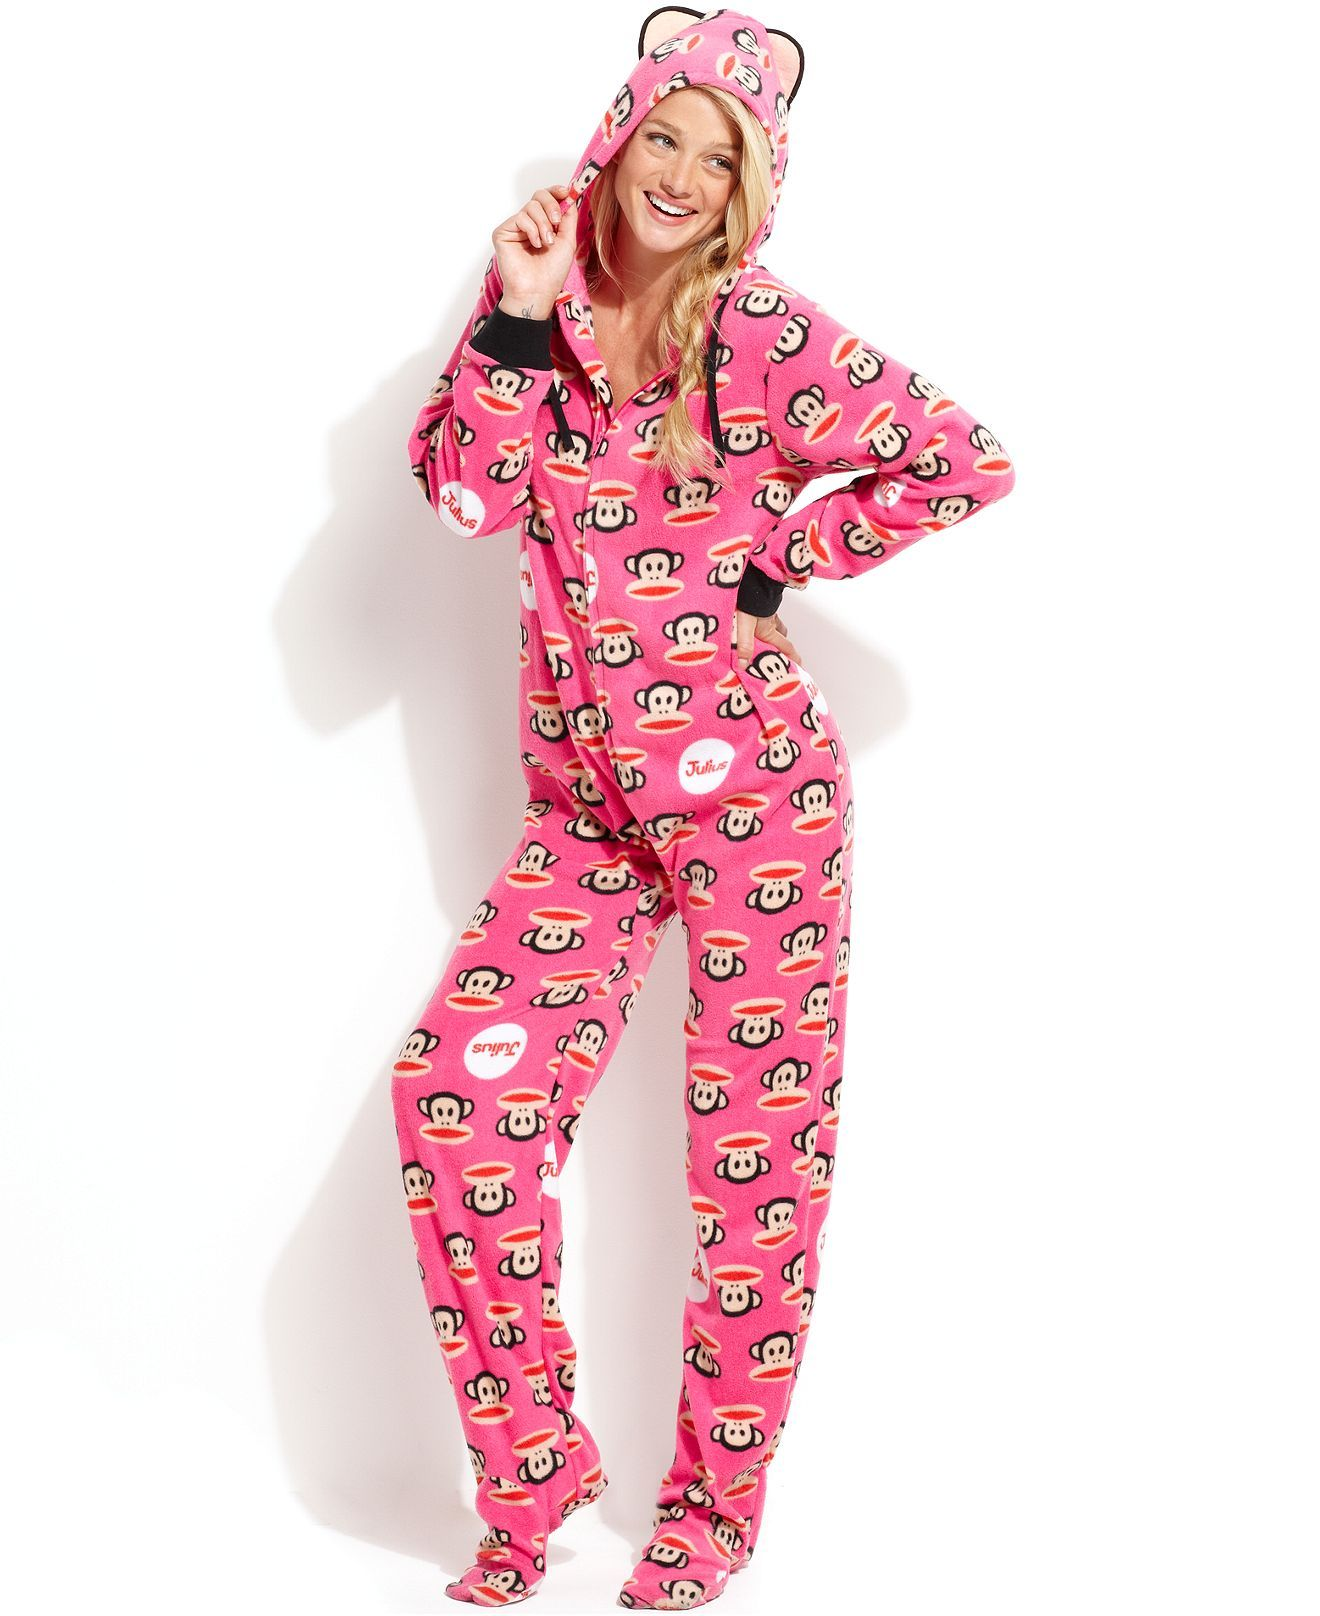 2a91e9ed8 Paul Frank Sparkle Ice Hooded Footed Pajamas - Yes please!!